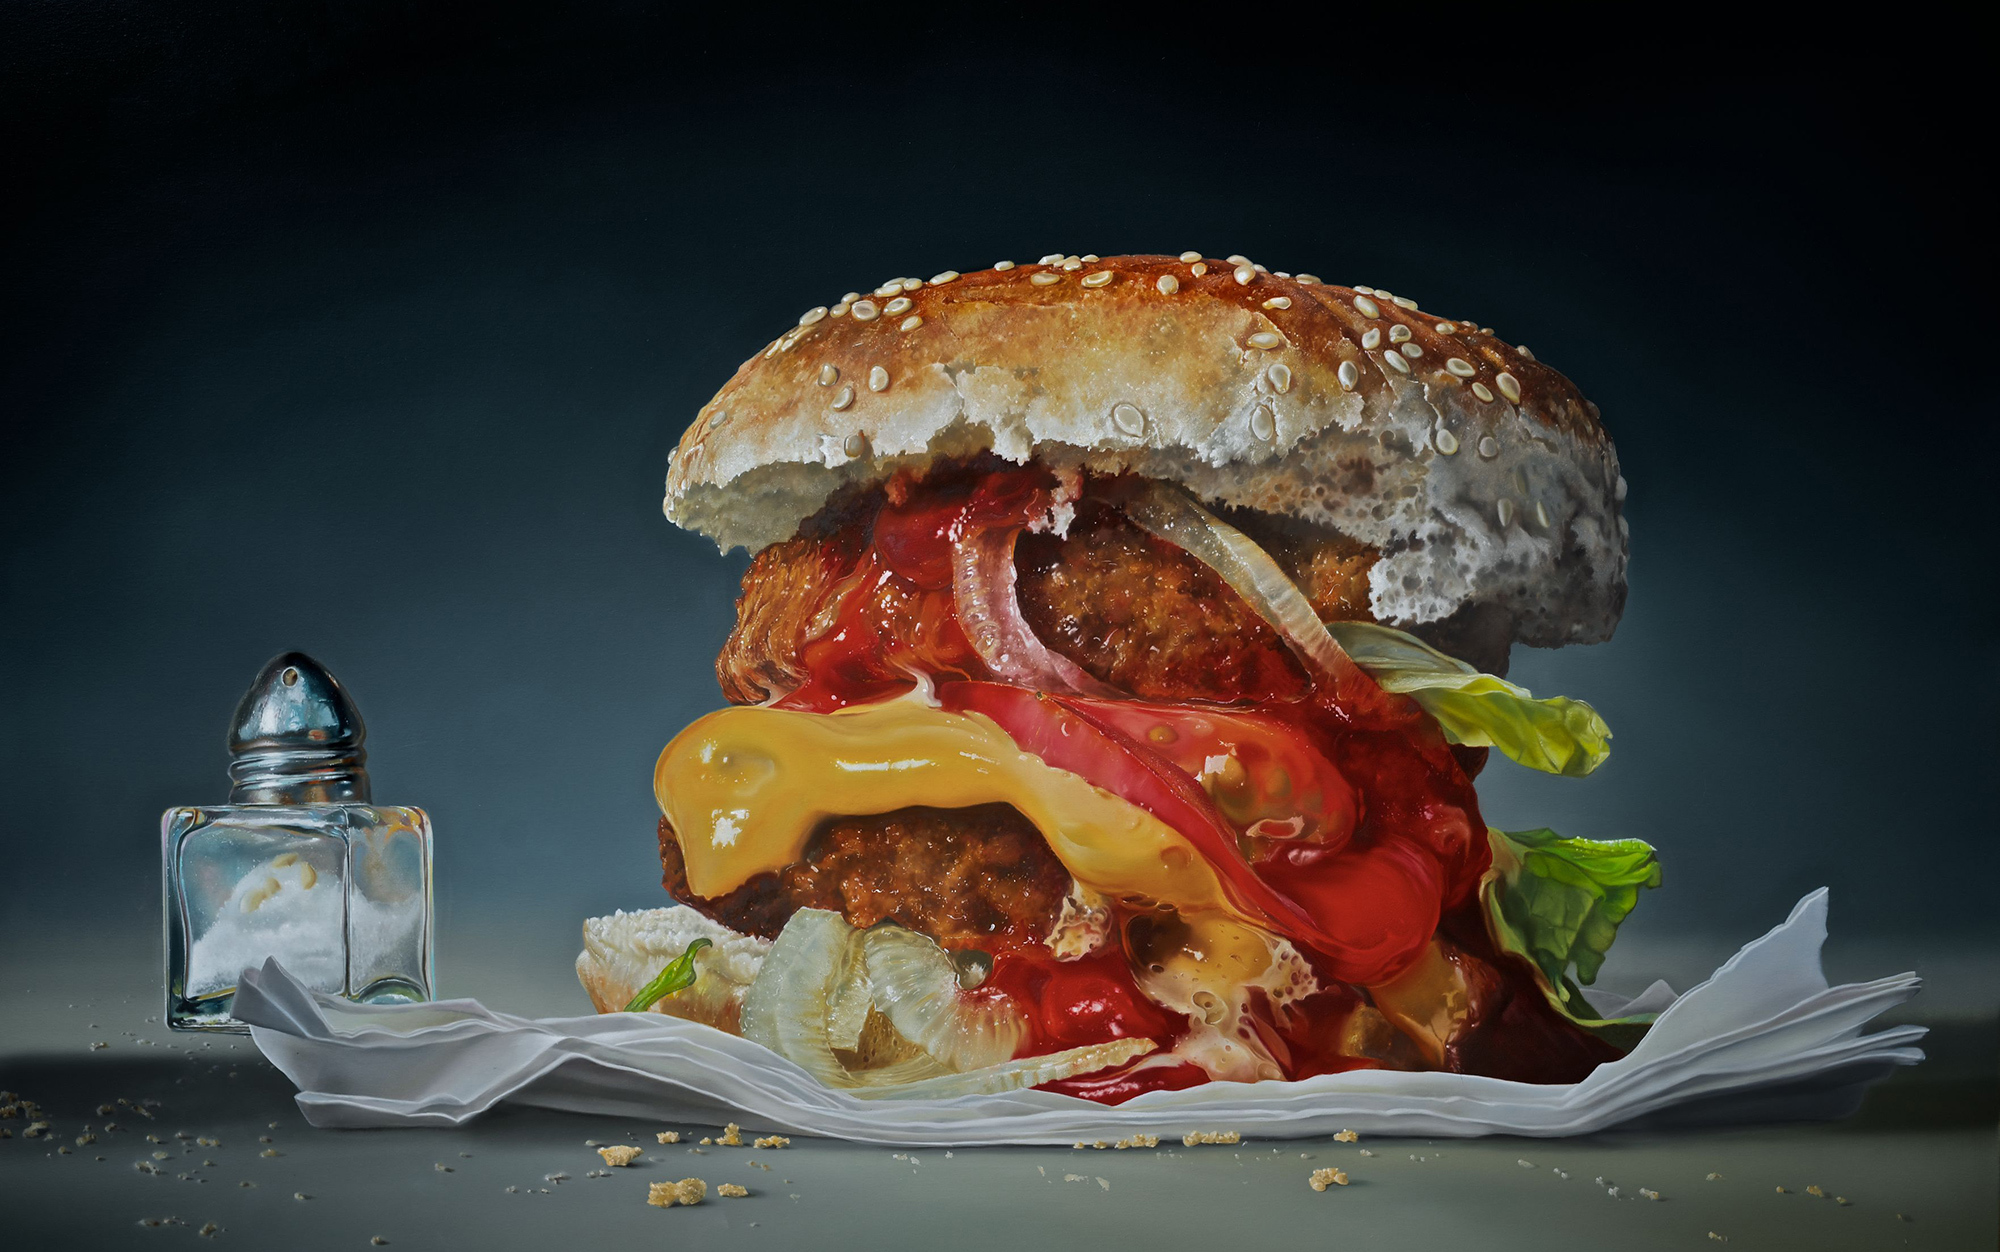 Header essay big burger  2015  120 x 180 cm  oil linen  1